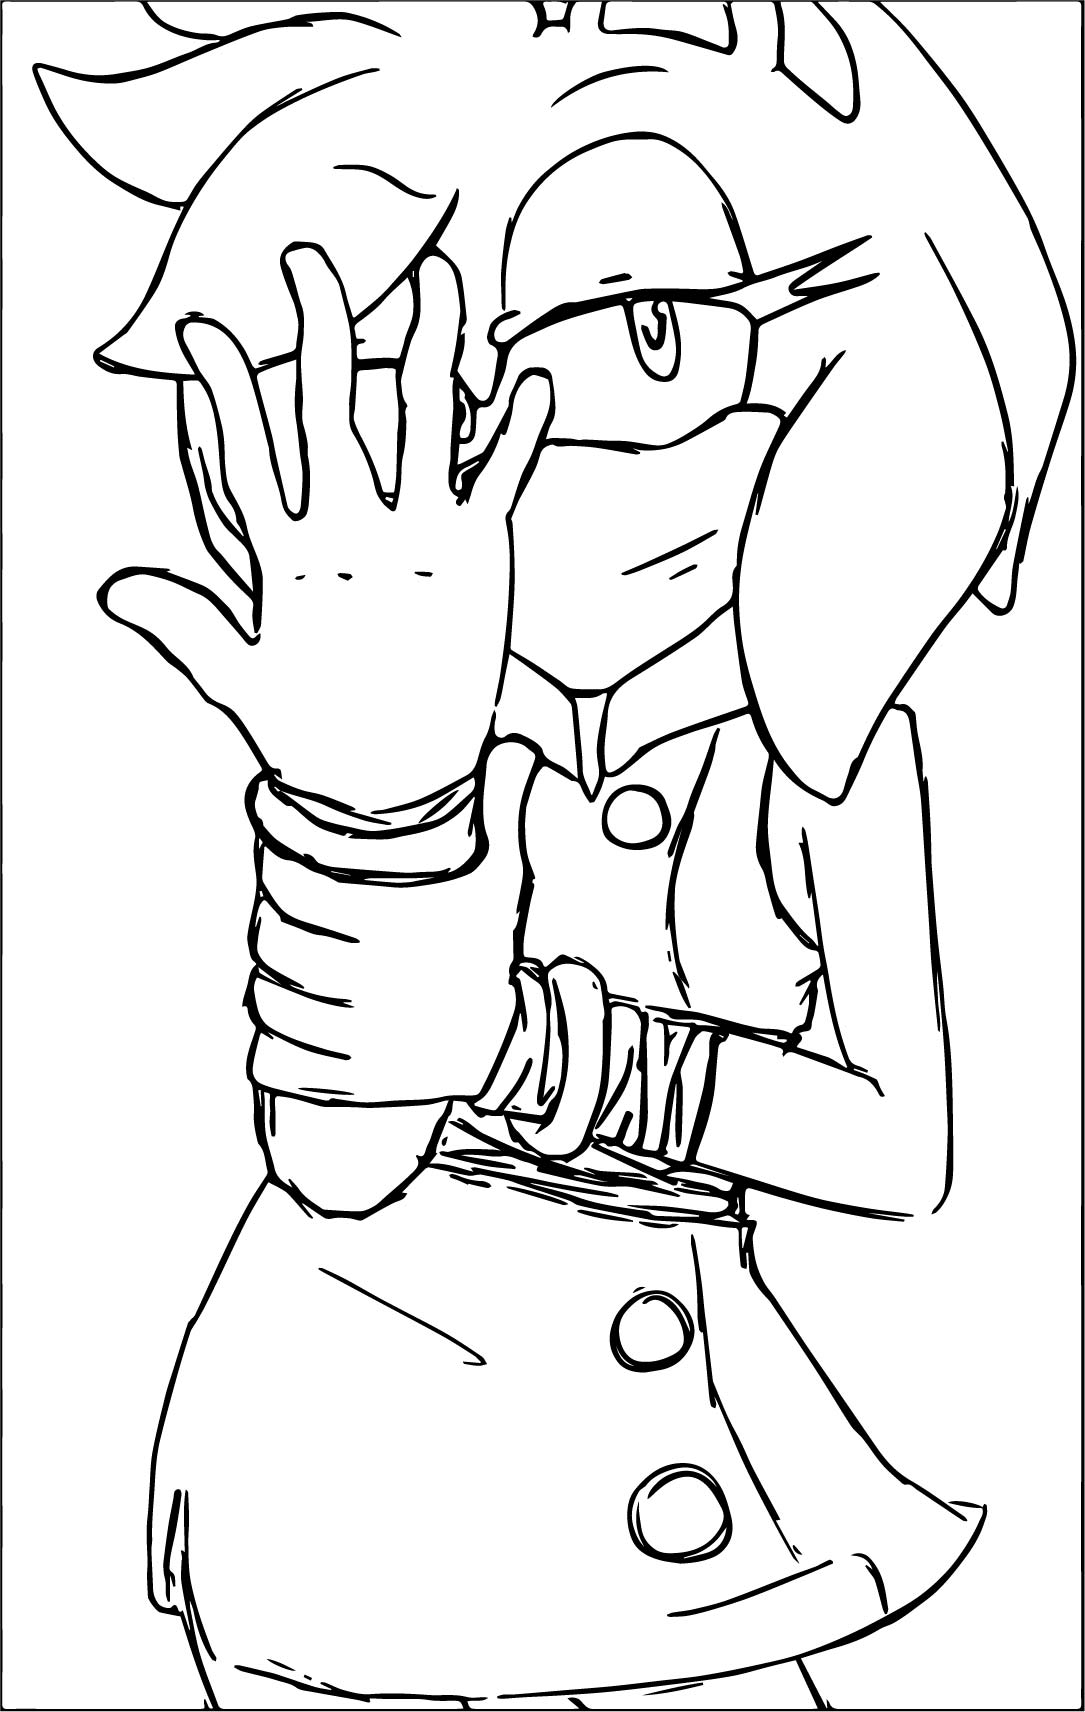 Amy Rose Hiding With Hand Coloring Page